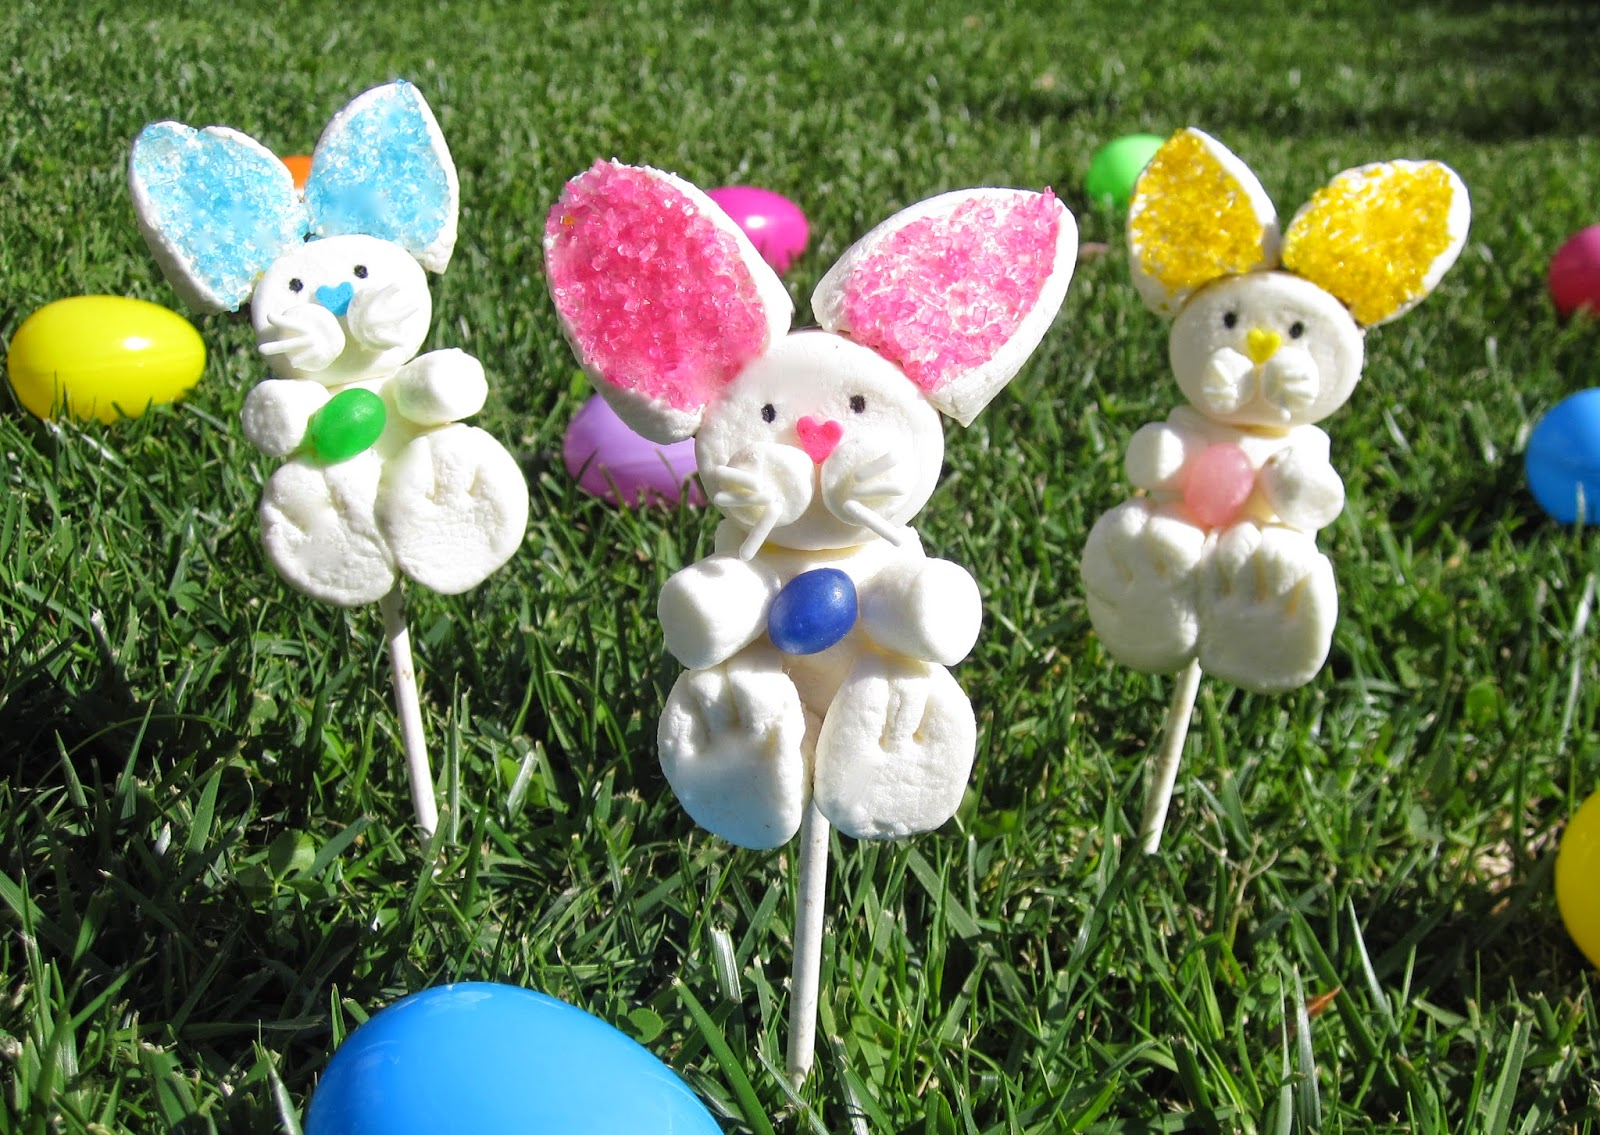 Video marshmallow easter bunny pops lindsay ann bakes even tie a custom tag to the stick to use as a personalized gift or place setting negle Choice Image